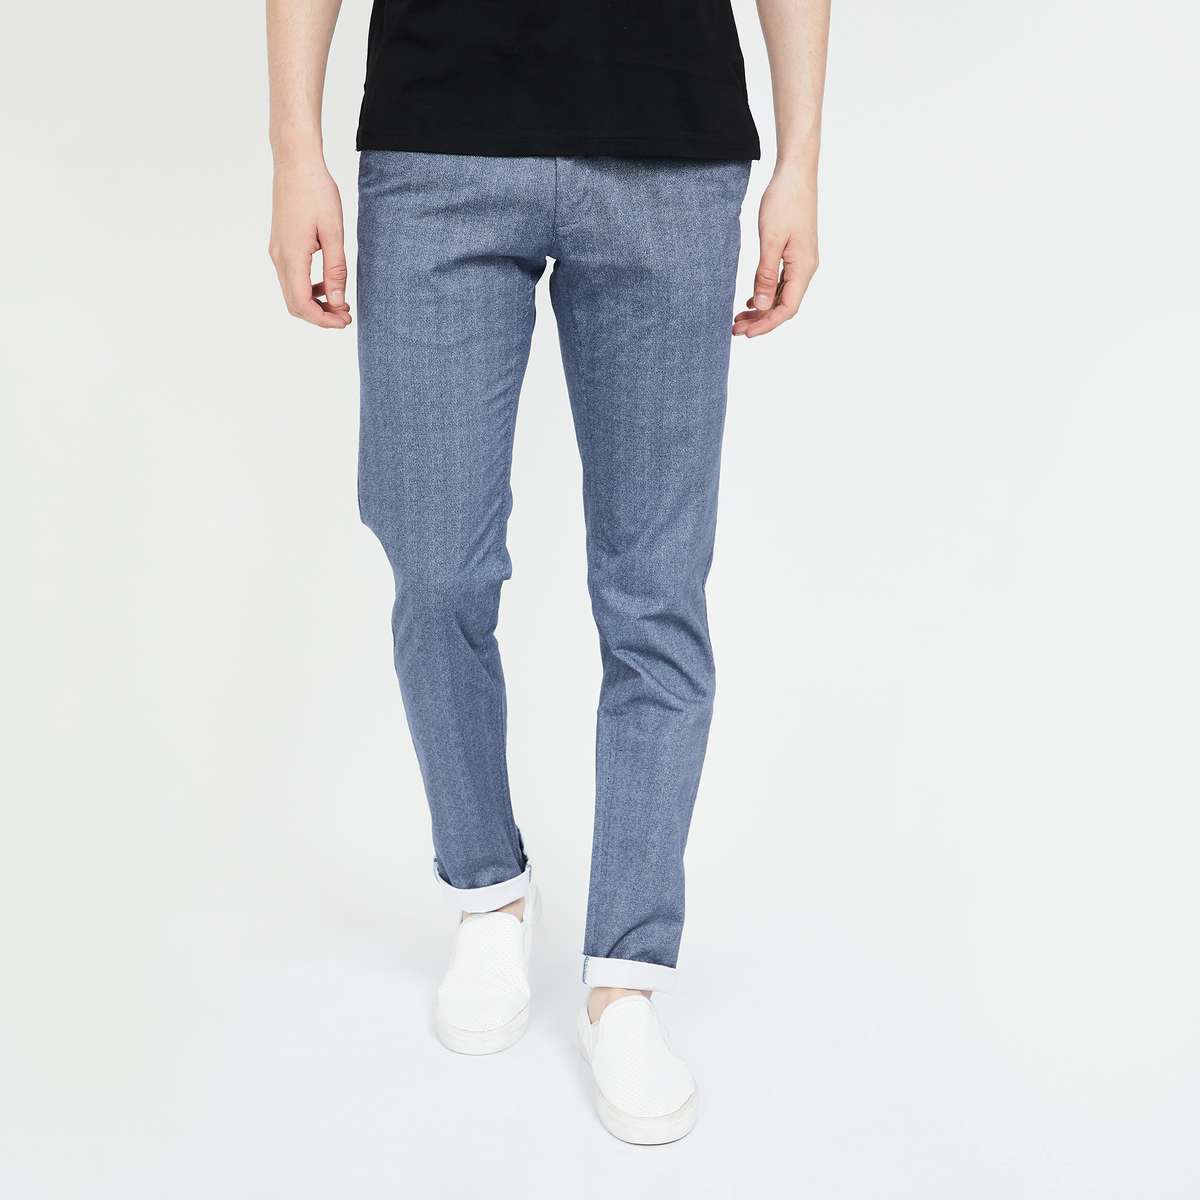 LOUIS PHILIPPE SPORT Striped Slim Fit Casual Trousers